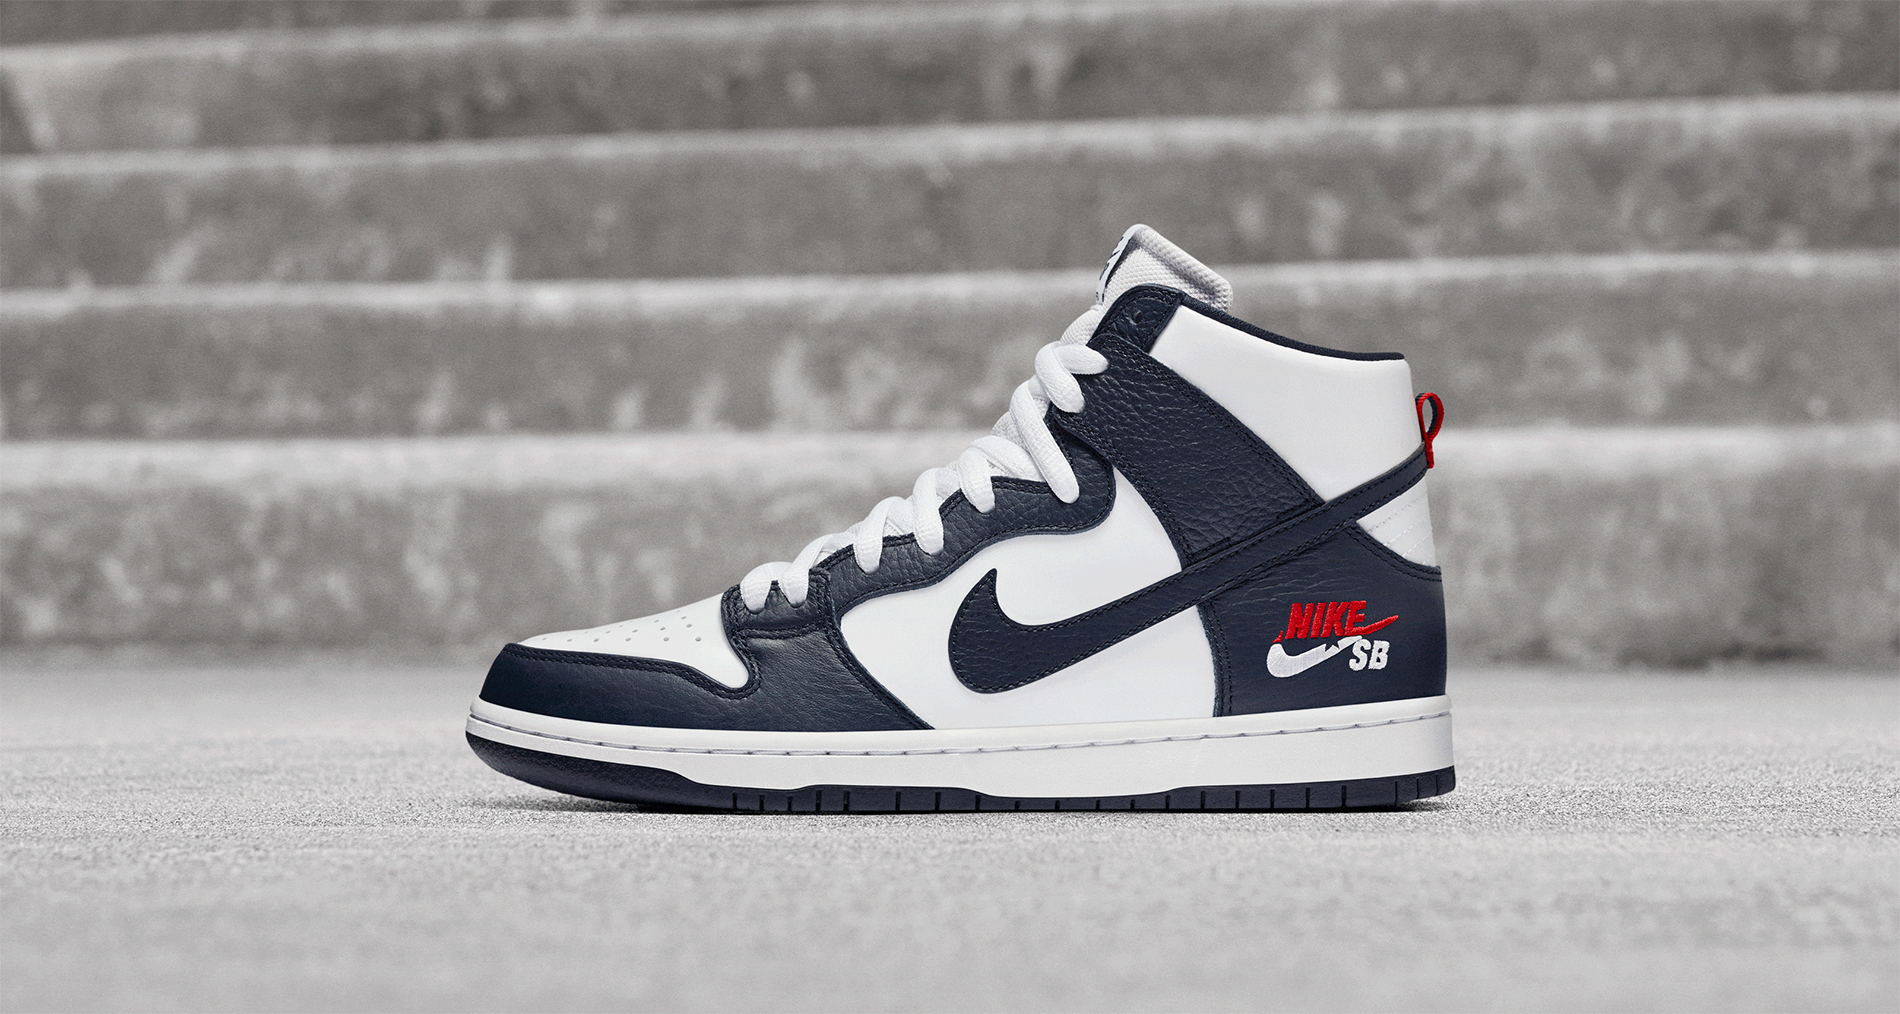 nike sb dunk high pro dream team pack drops very soon. Black Bedroom Furniture Sets. Home Design Ideas